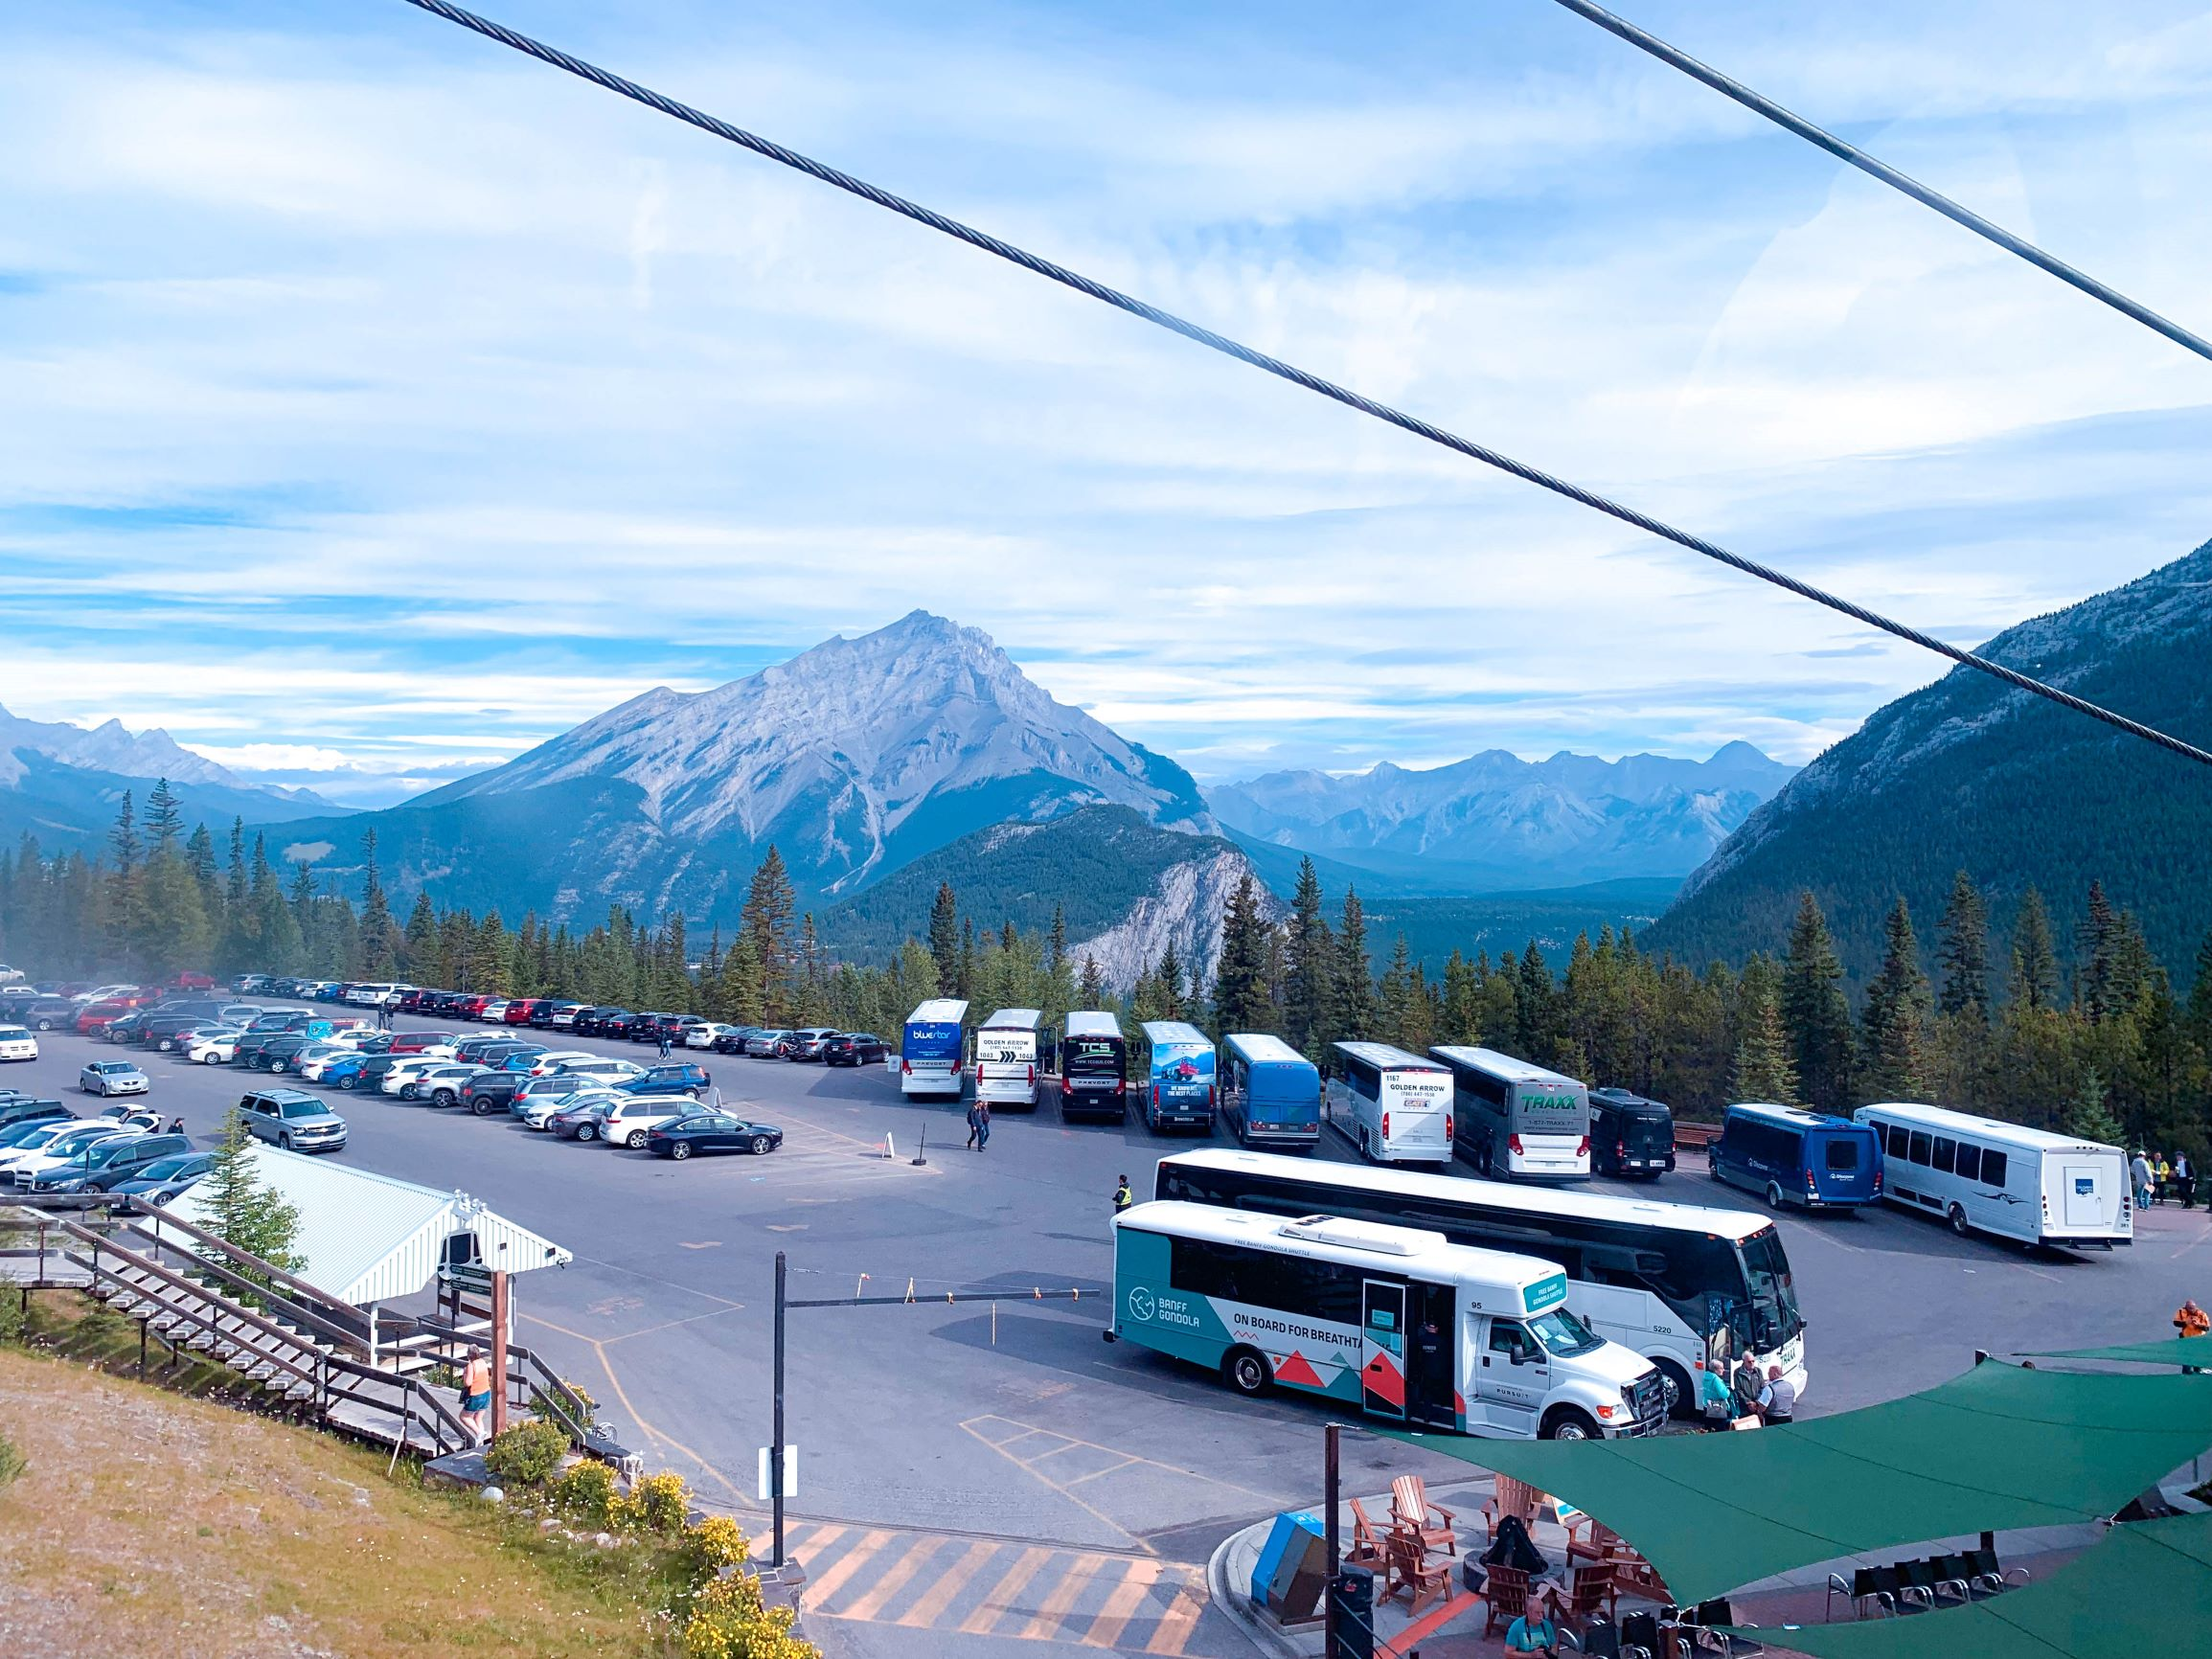 Banff Gondola Parking area review